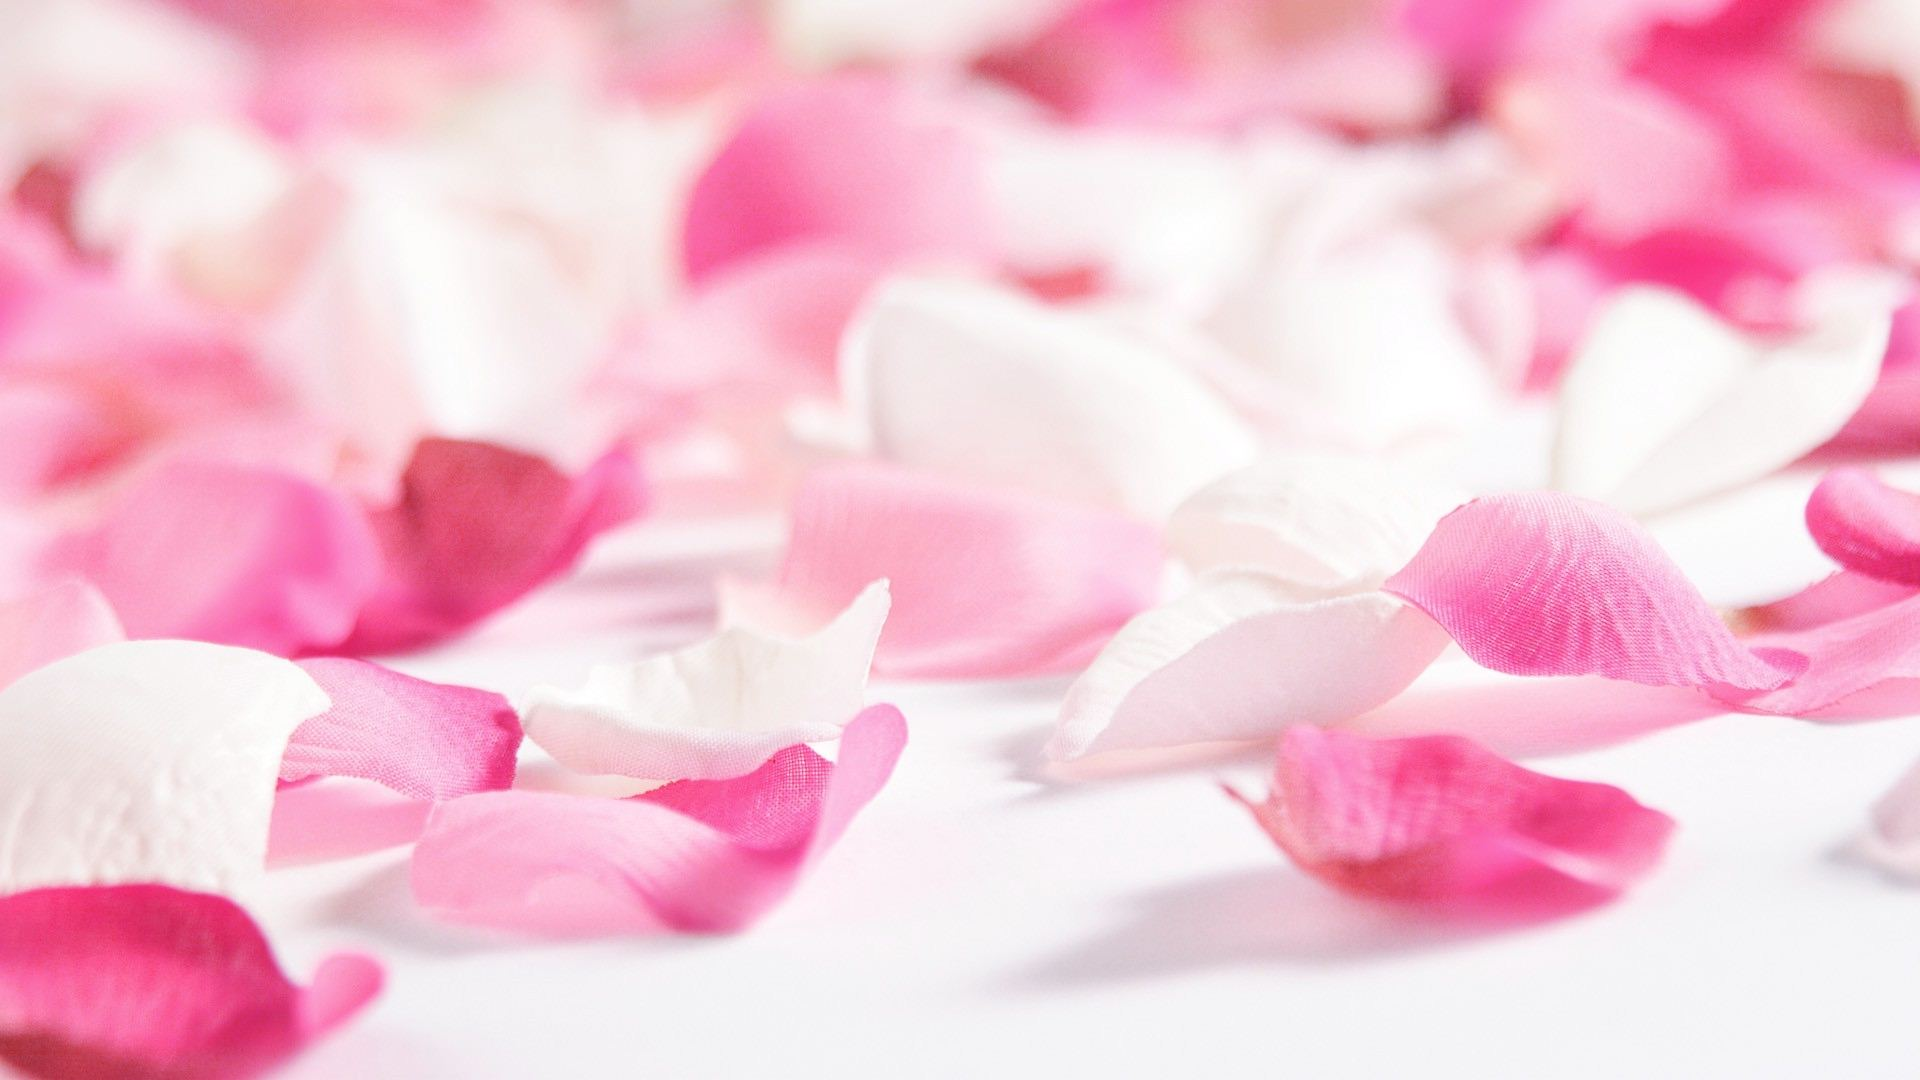 Flowers & Rose Petals Wallpapers HD Pictures – One HD Wallpaper ...